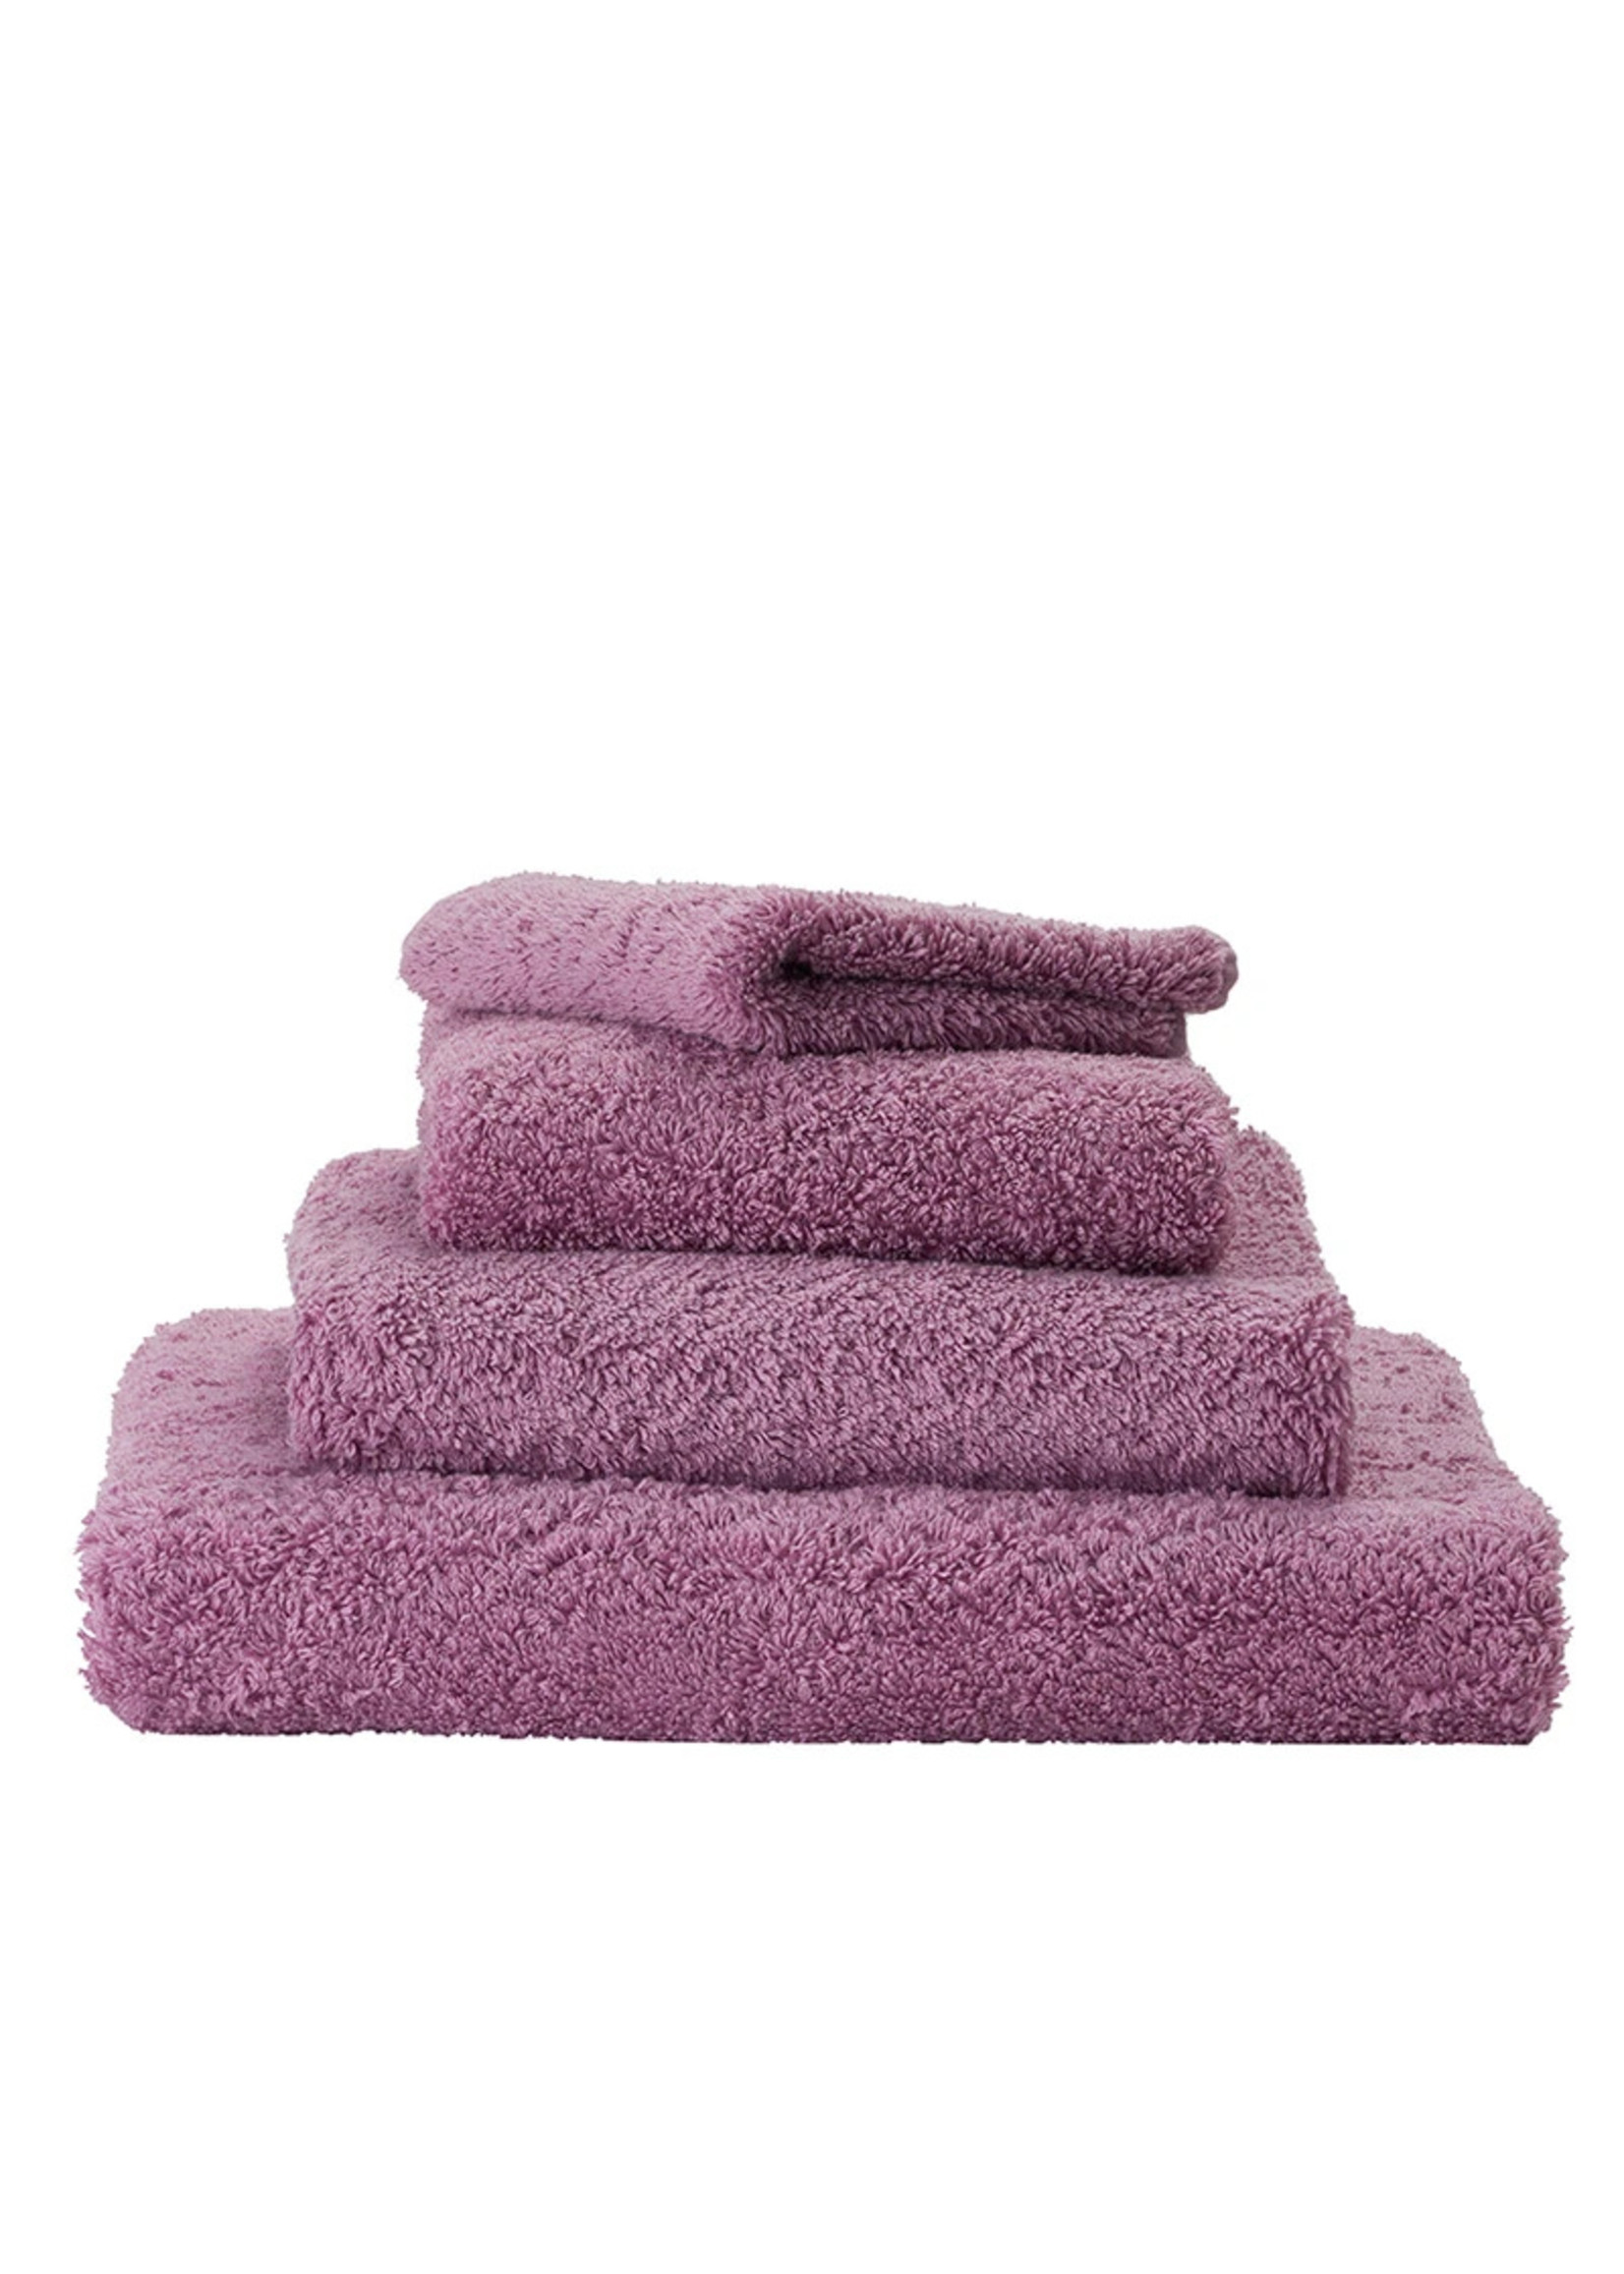 Abyss & Habidecor Super Pile Orchid Towels